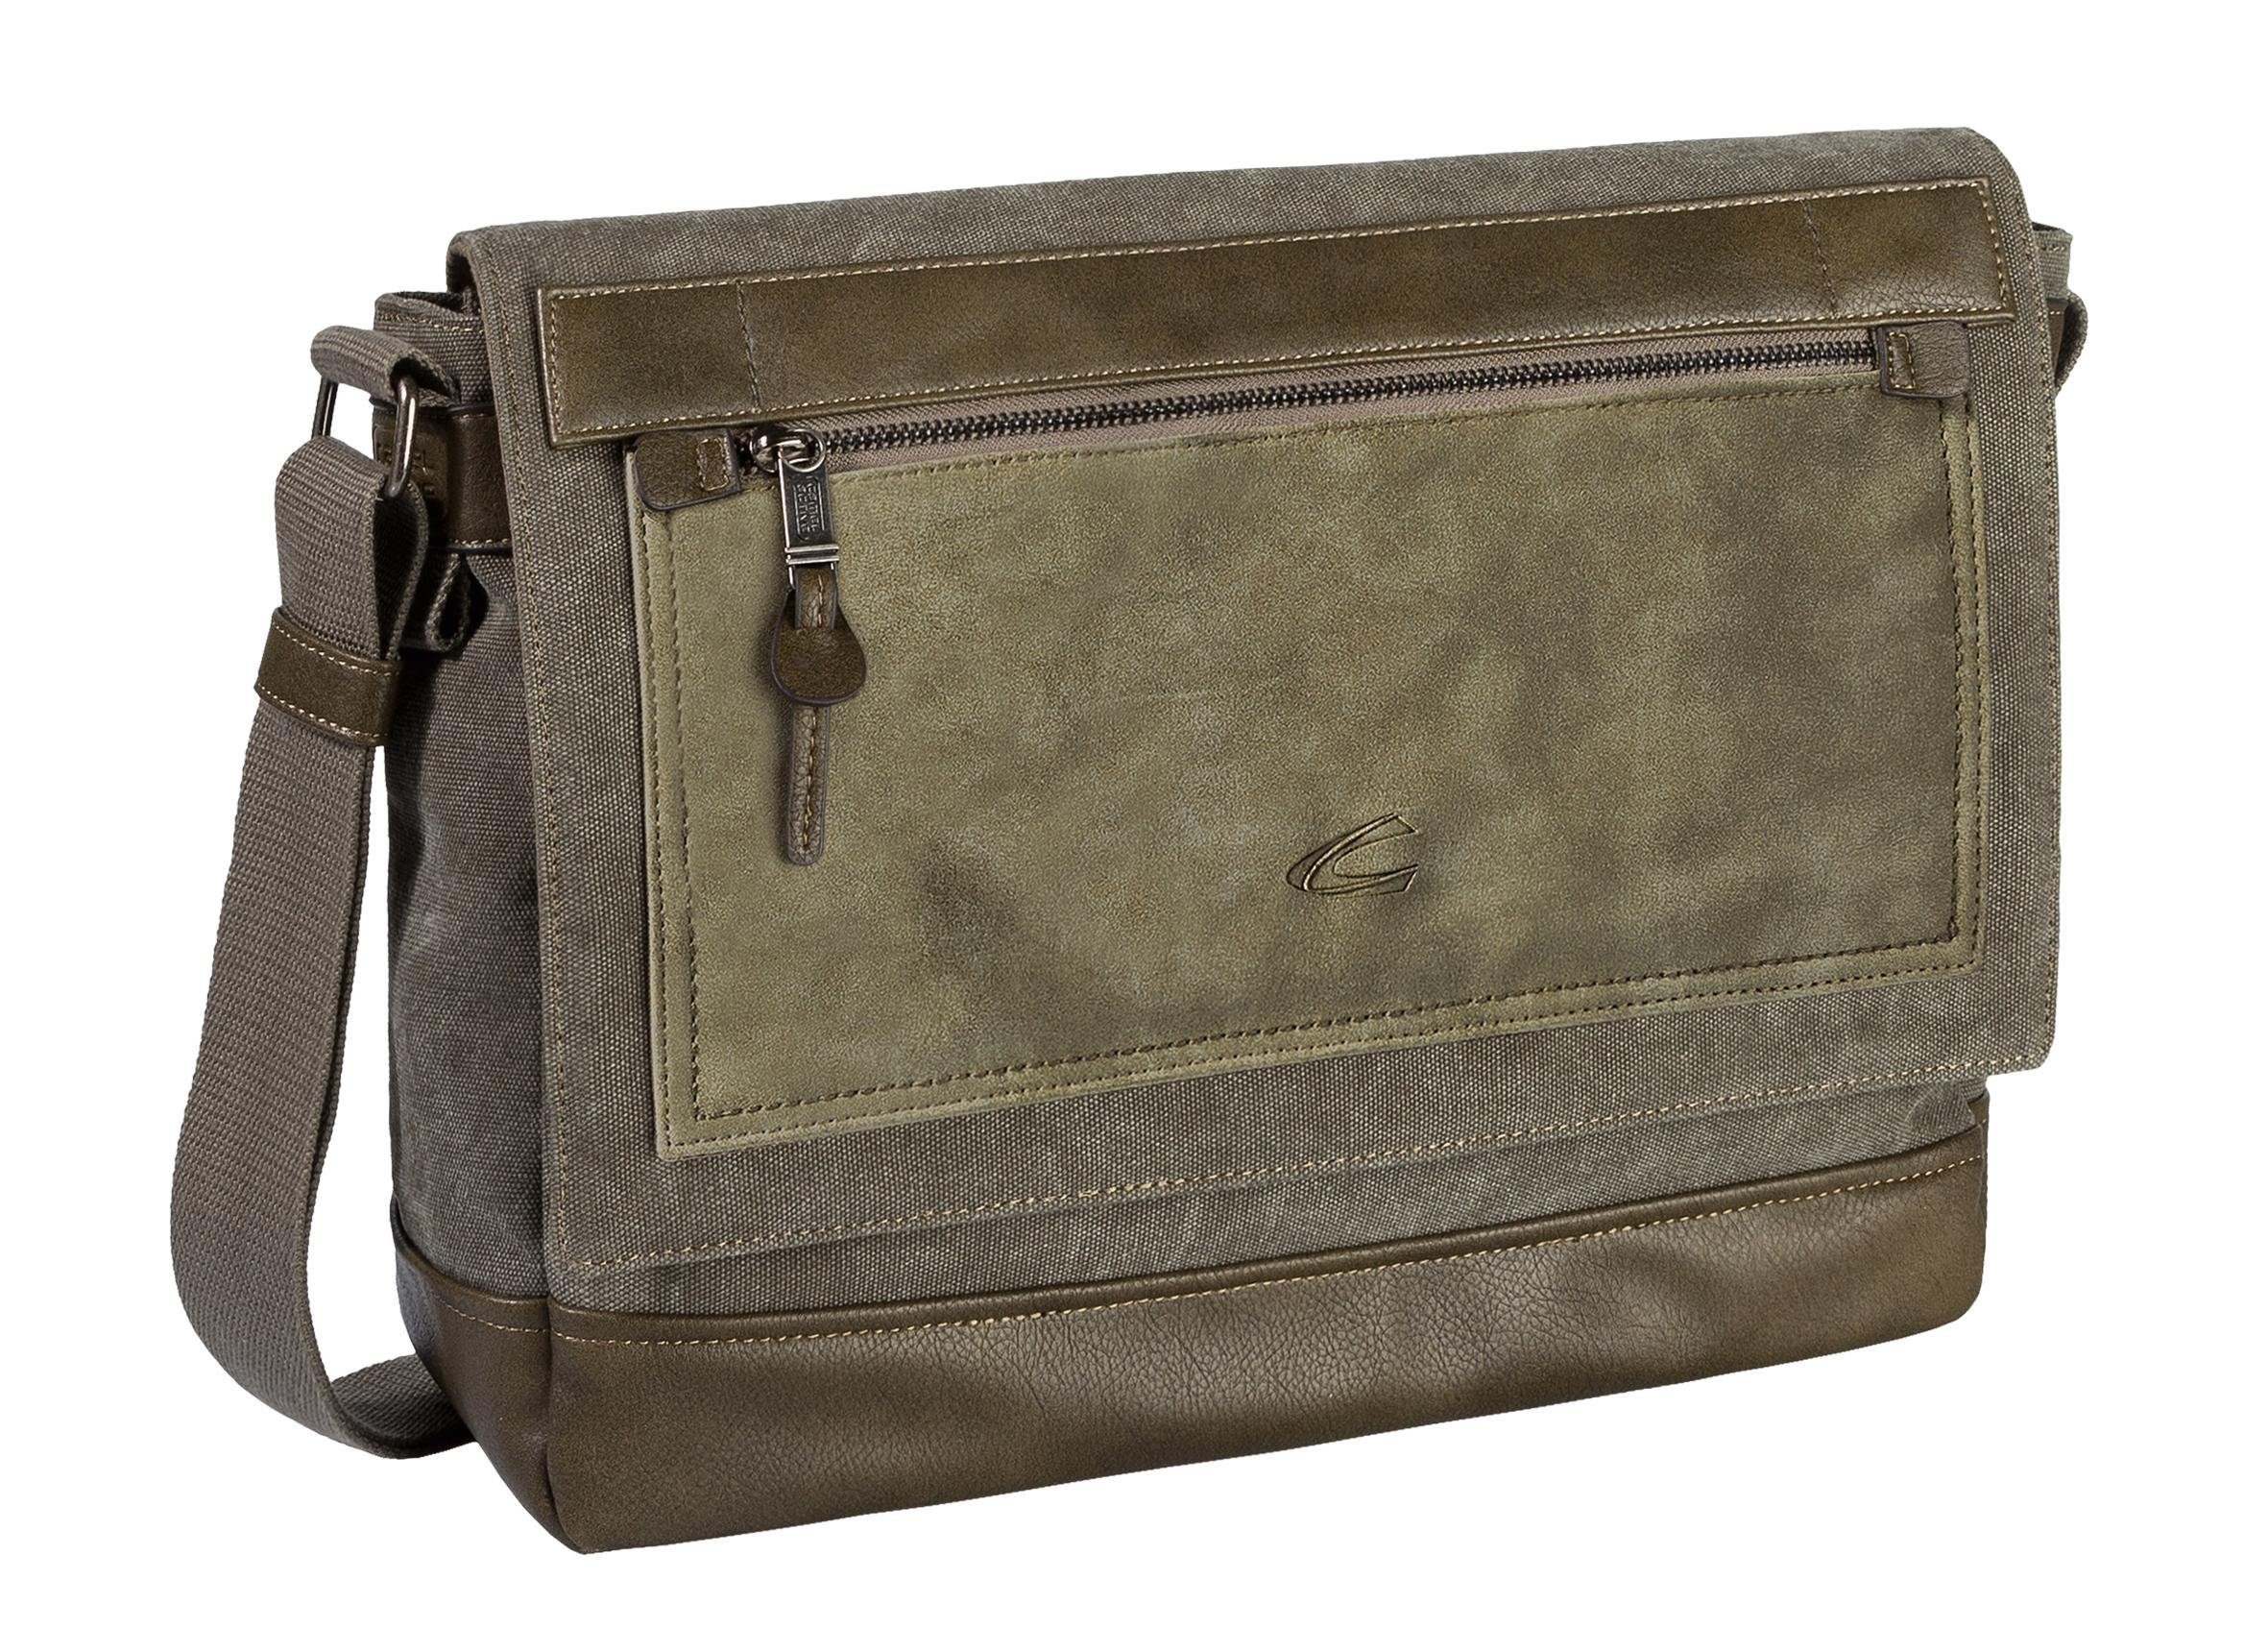 camel active Messenger Bag »SUMATRA«, mit Laptopfach